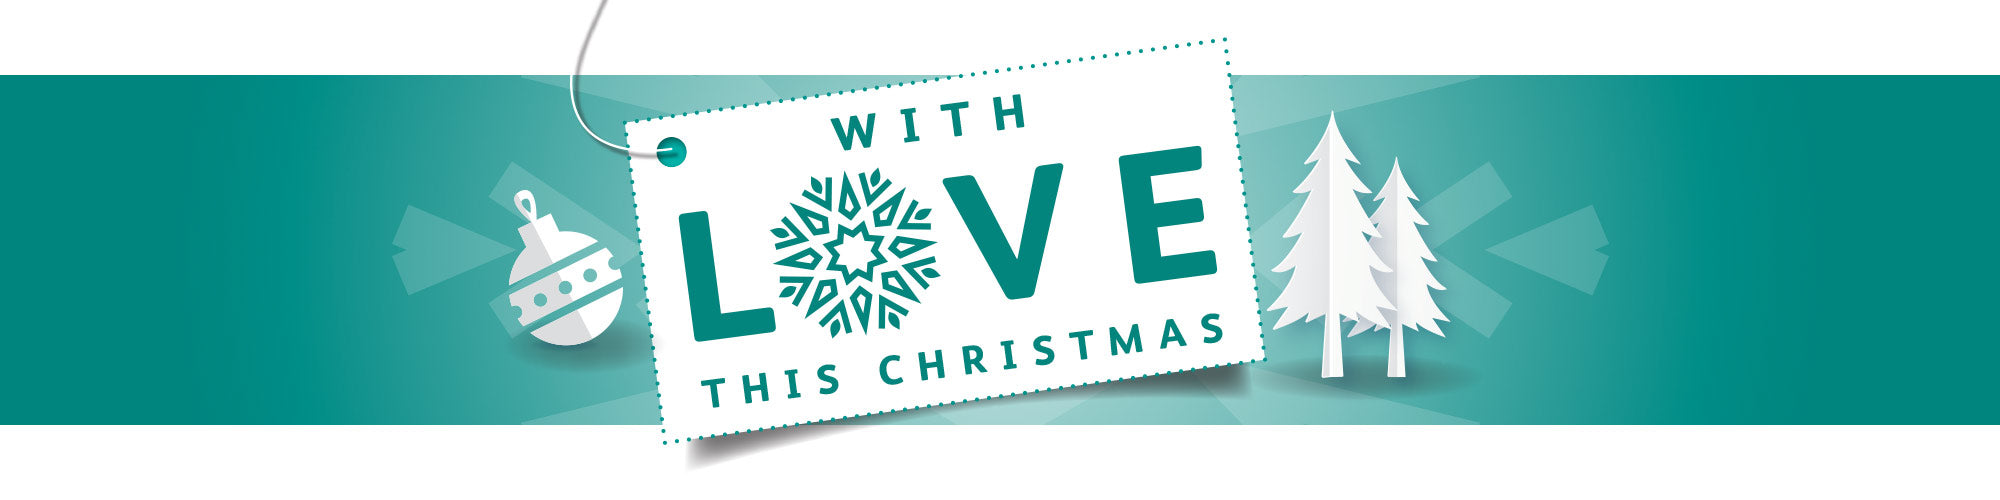 With love this Christmas